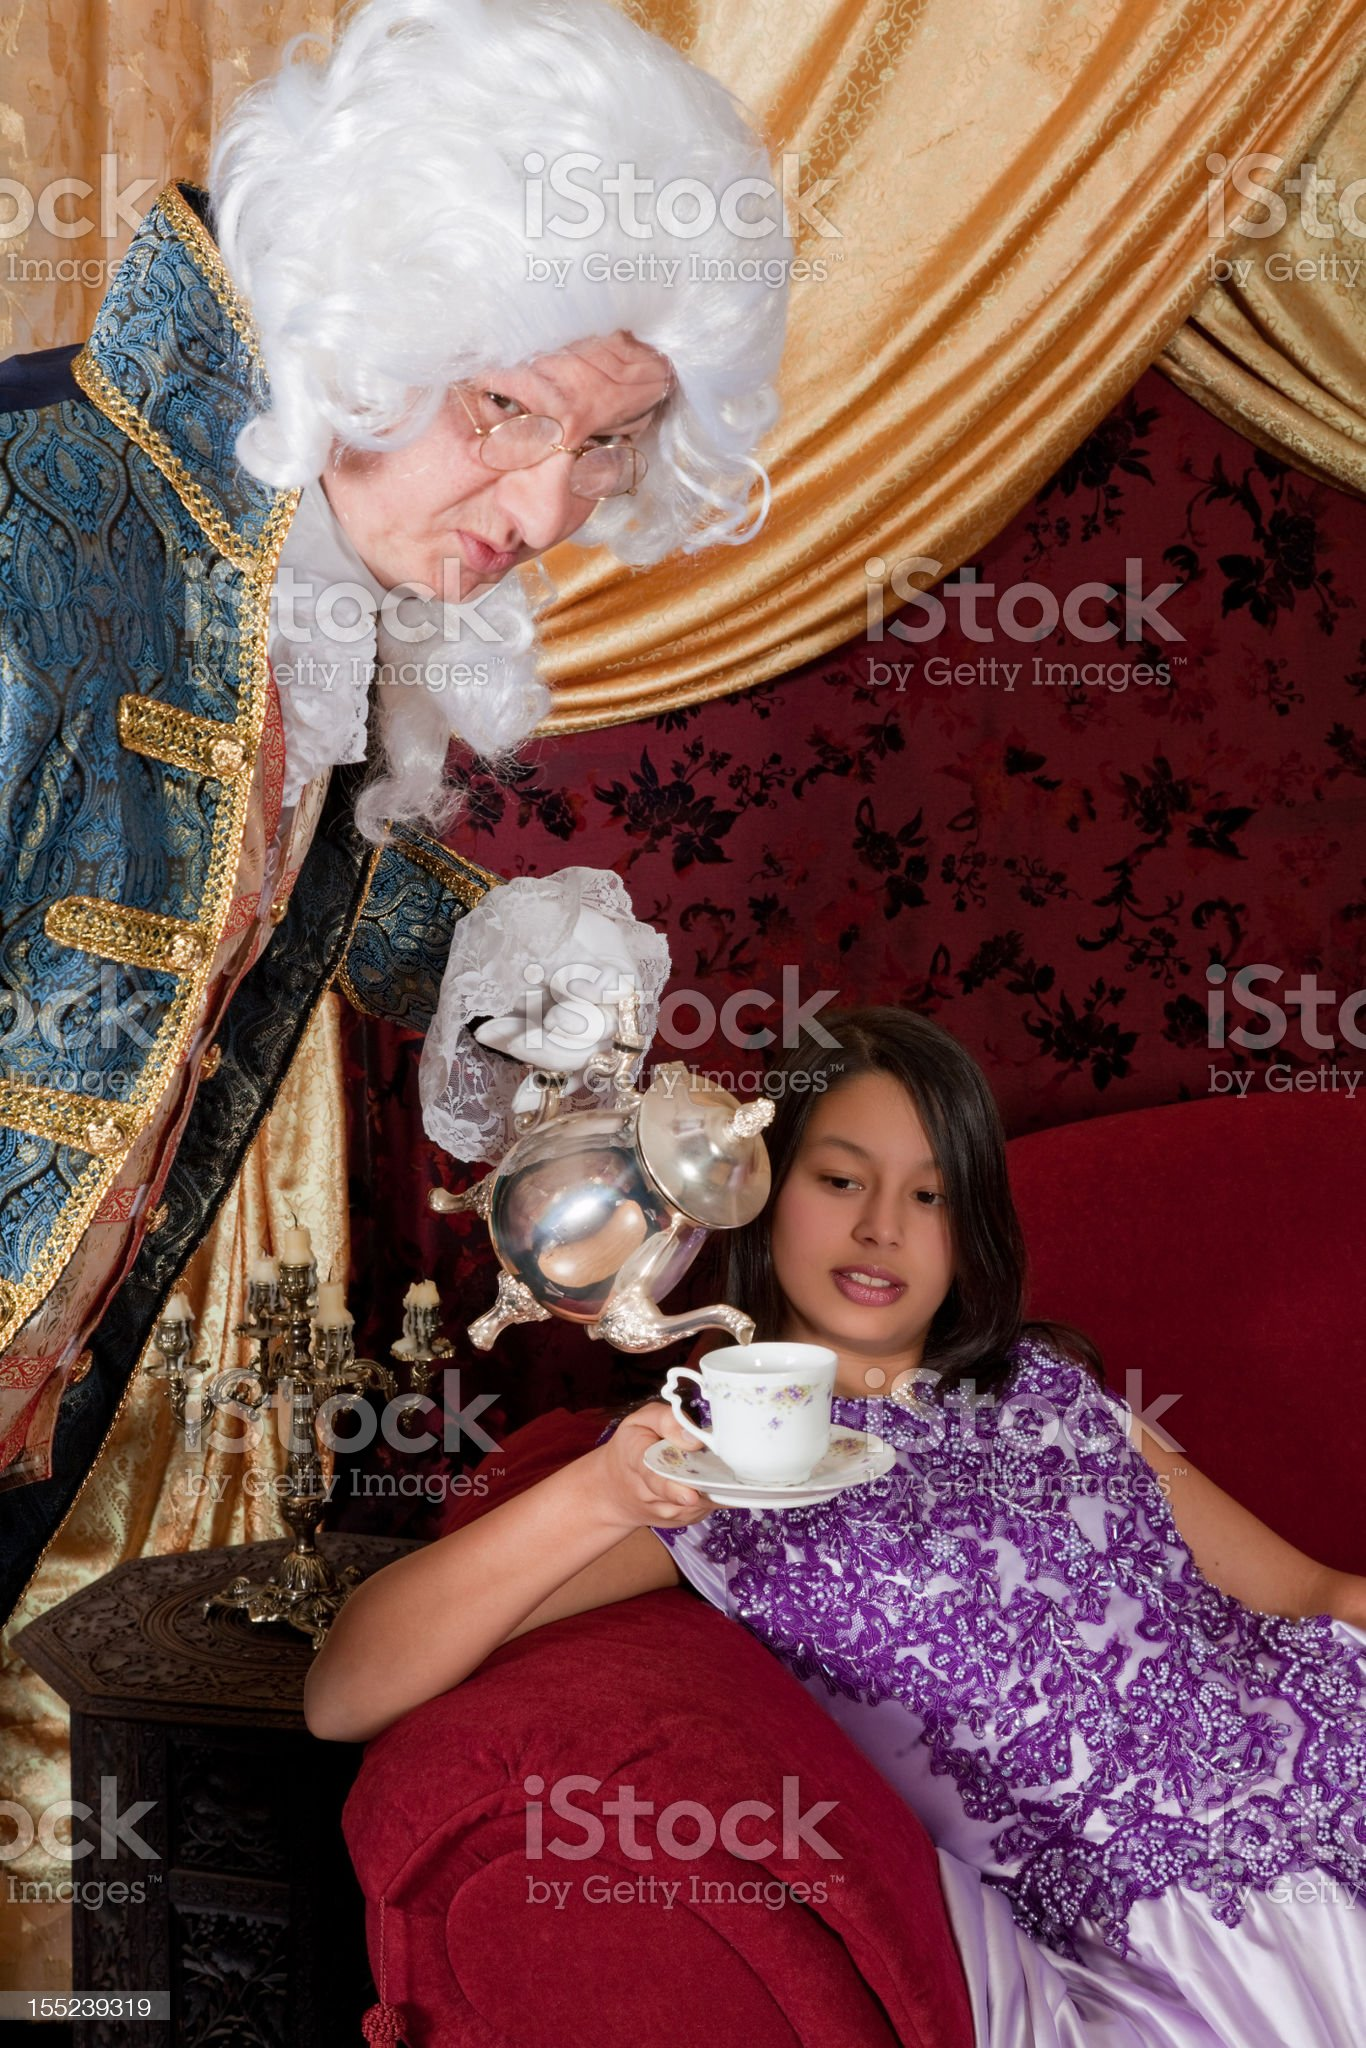 Pouring tea for the Lady royalty-free stock photo